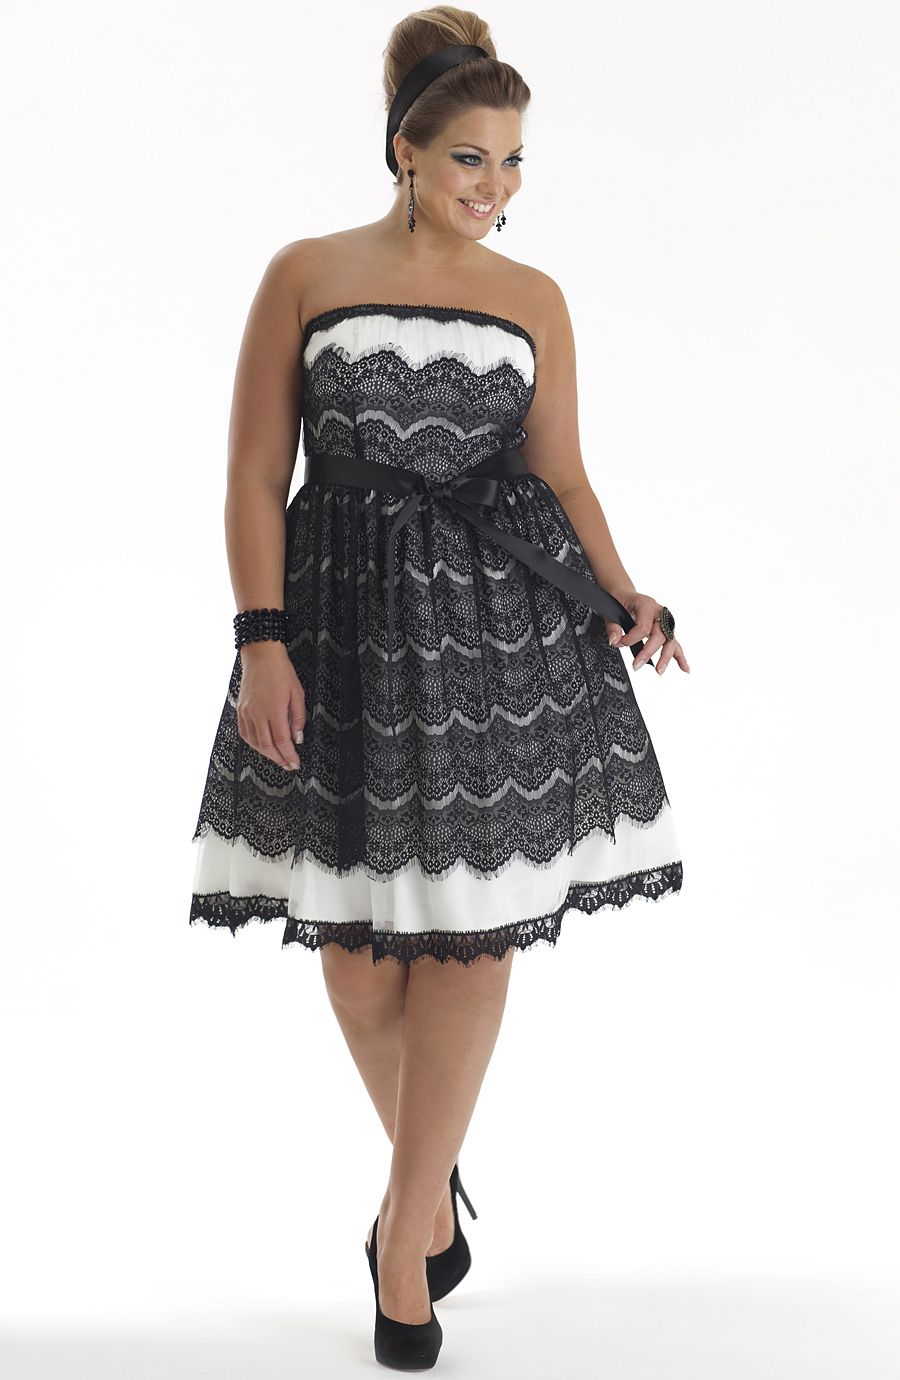 cbef6832847 Plus+Size+Evening+Dresses